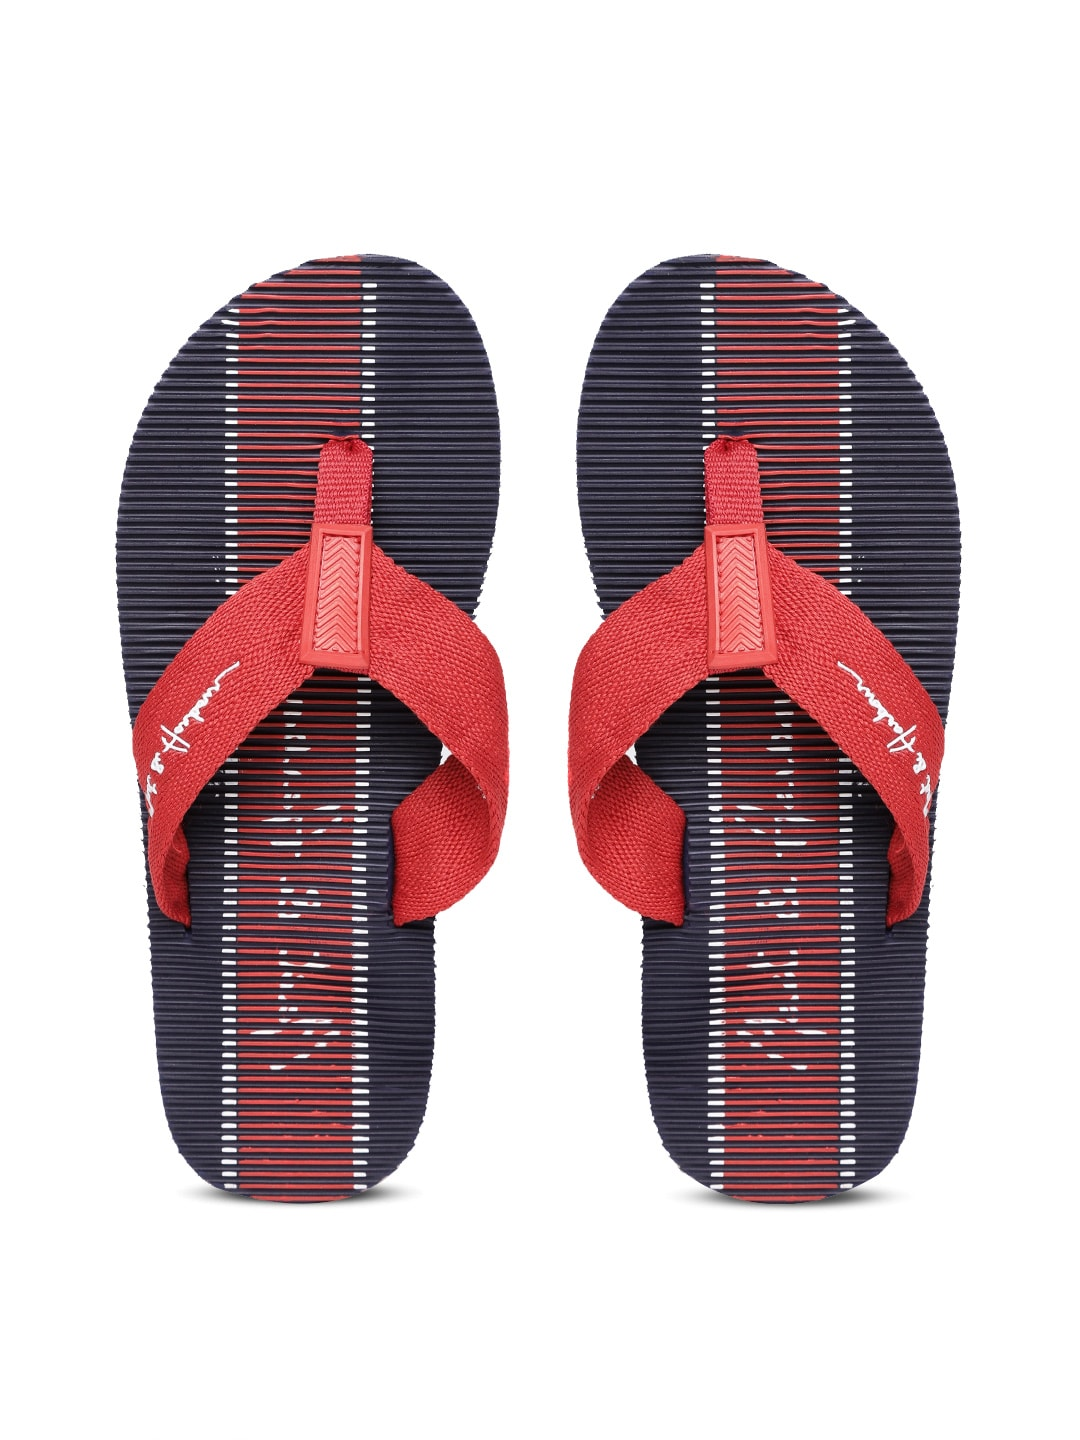 Mast & Harbour Men Red & Navy Blue Striped Thong Flip-Flops image